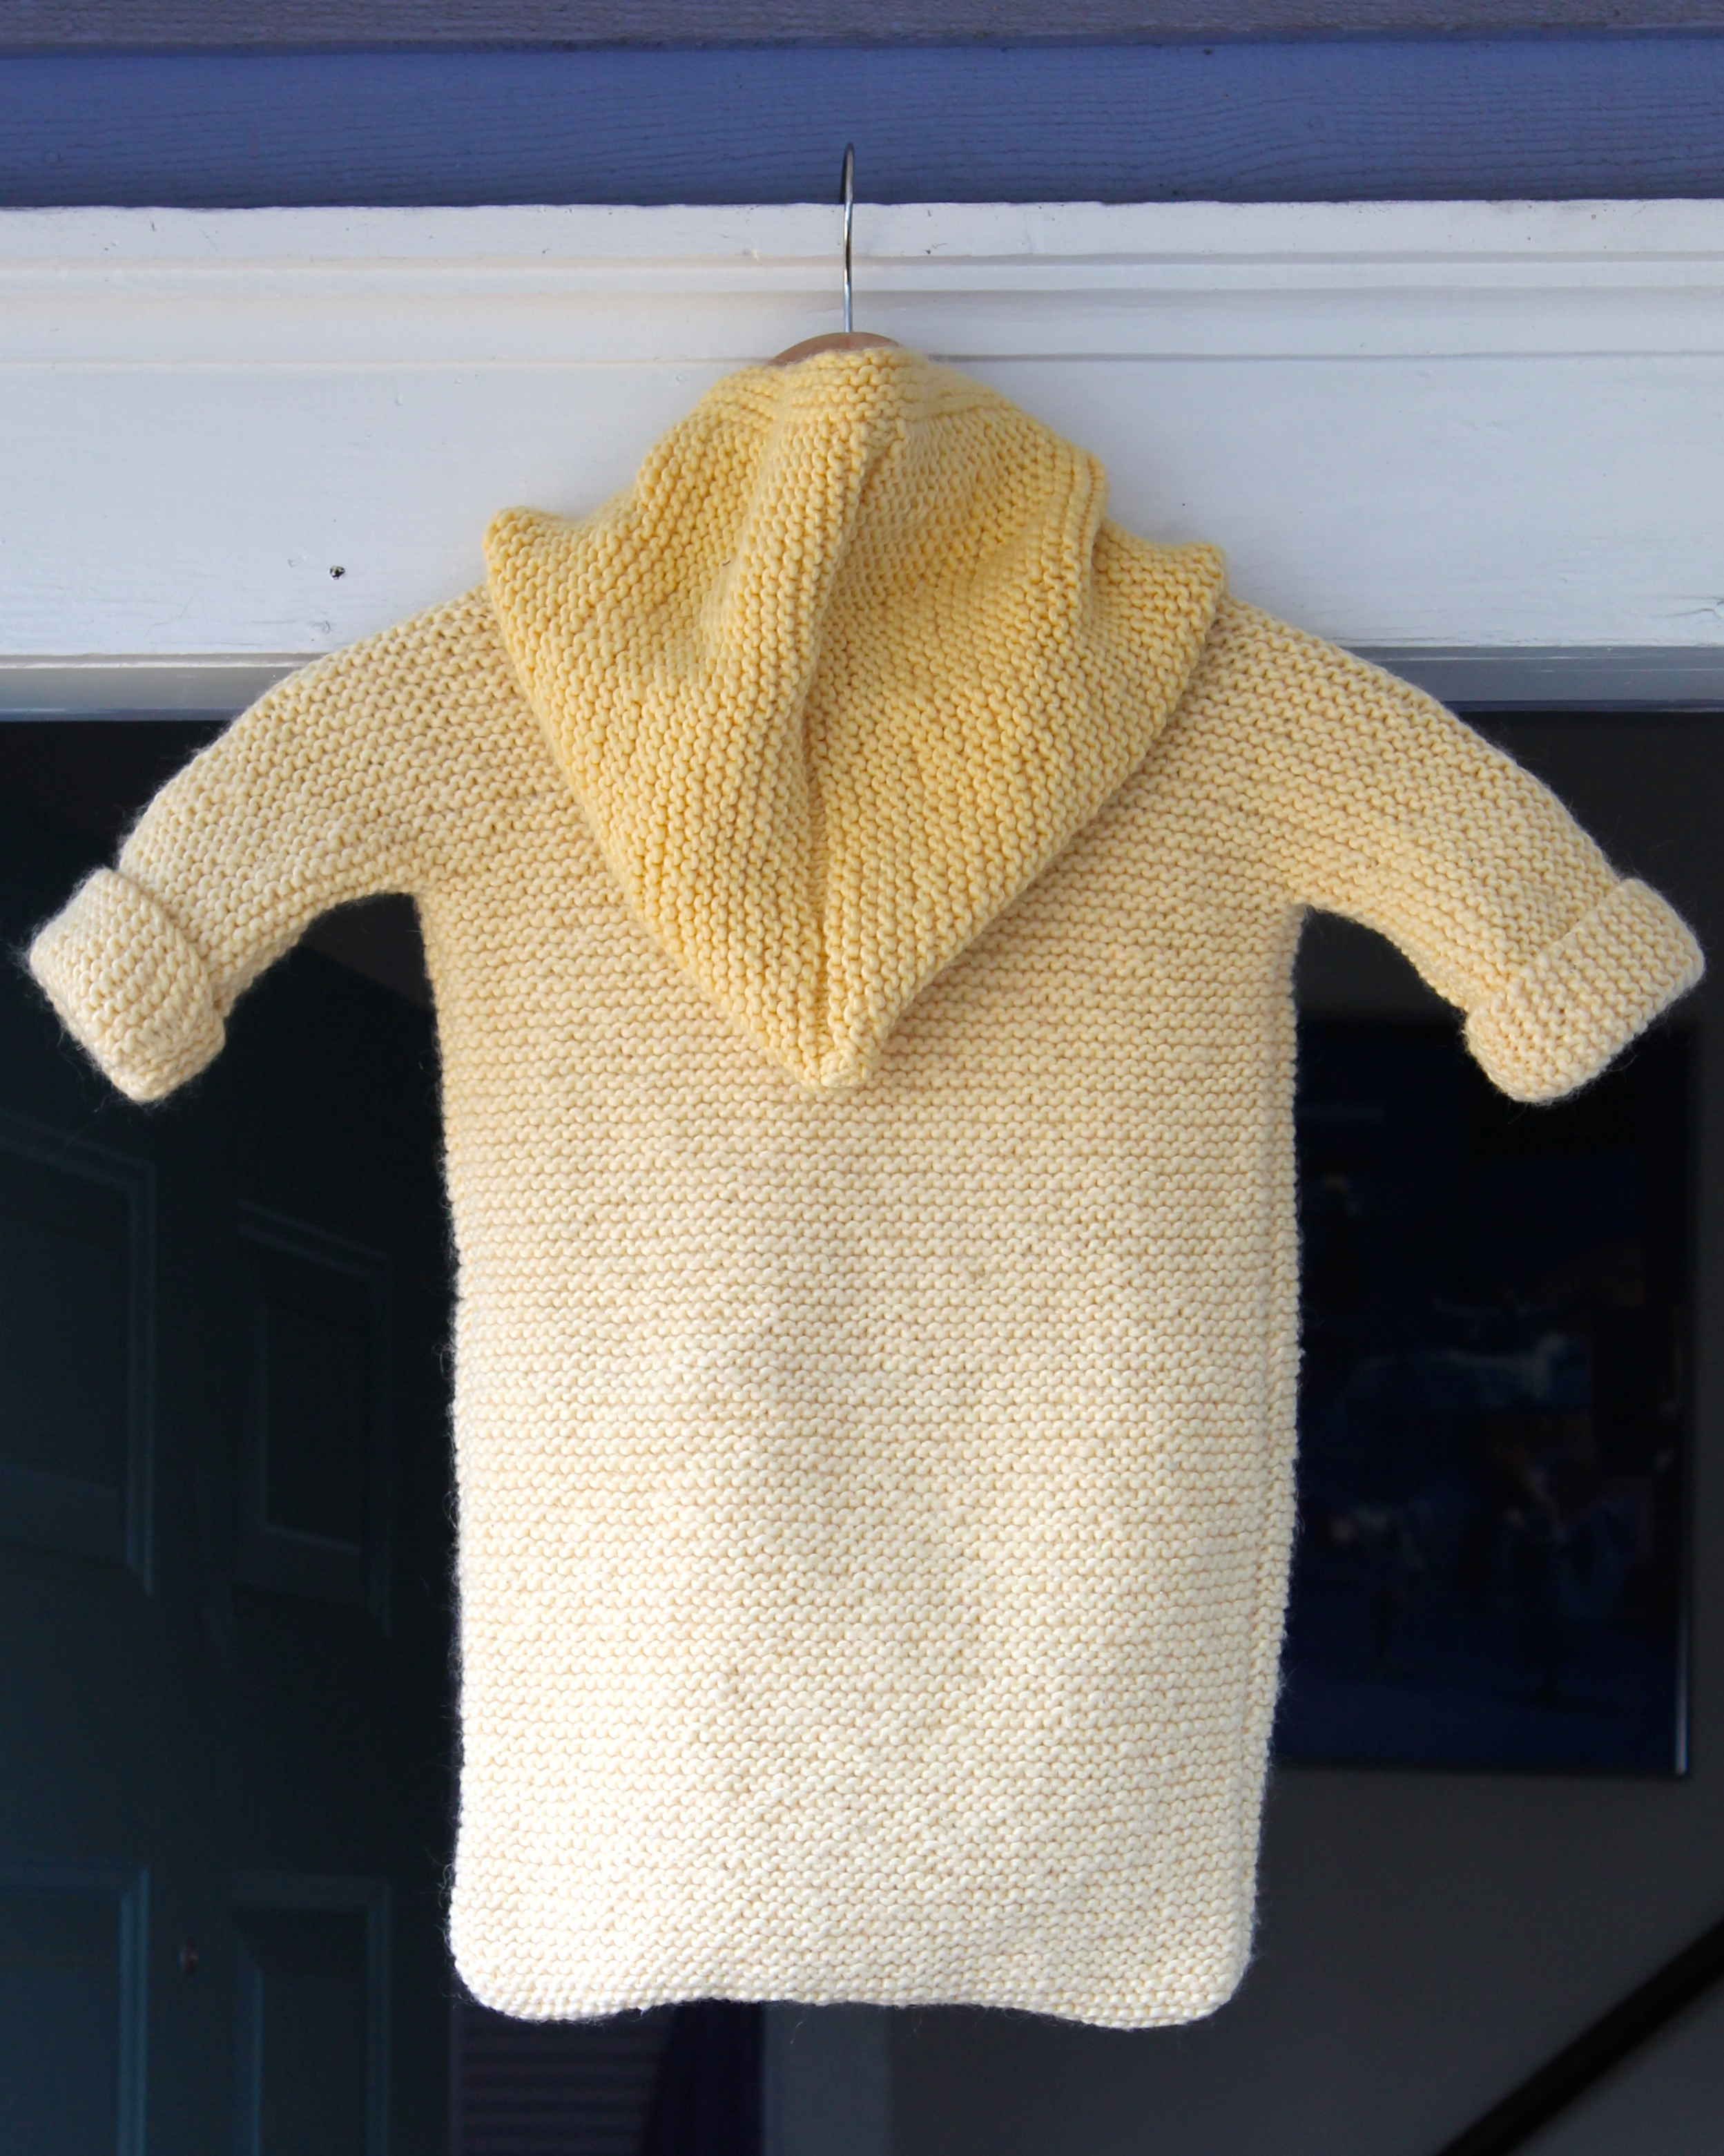 Back of baby sleep sack made from yellow wool